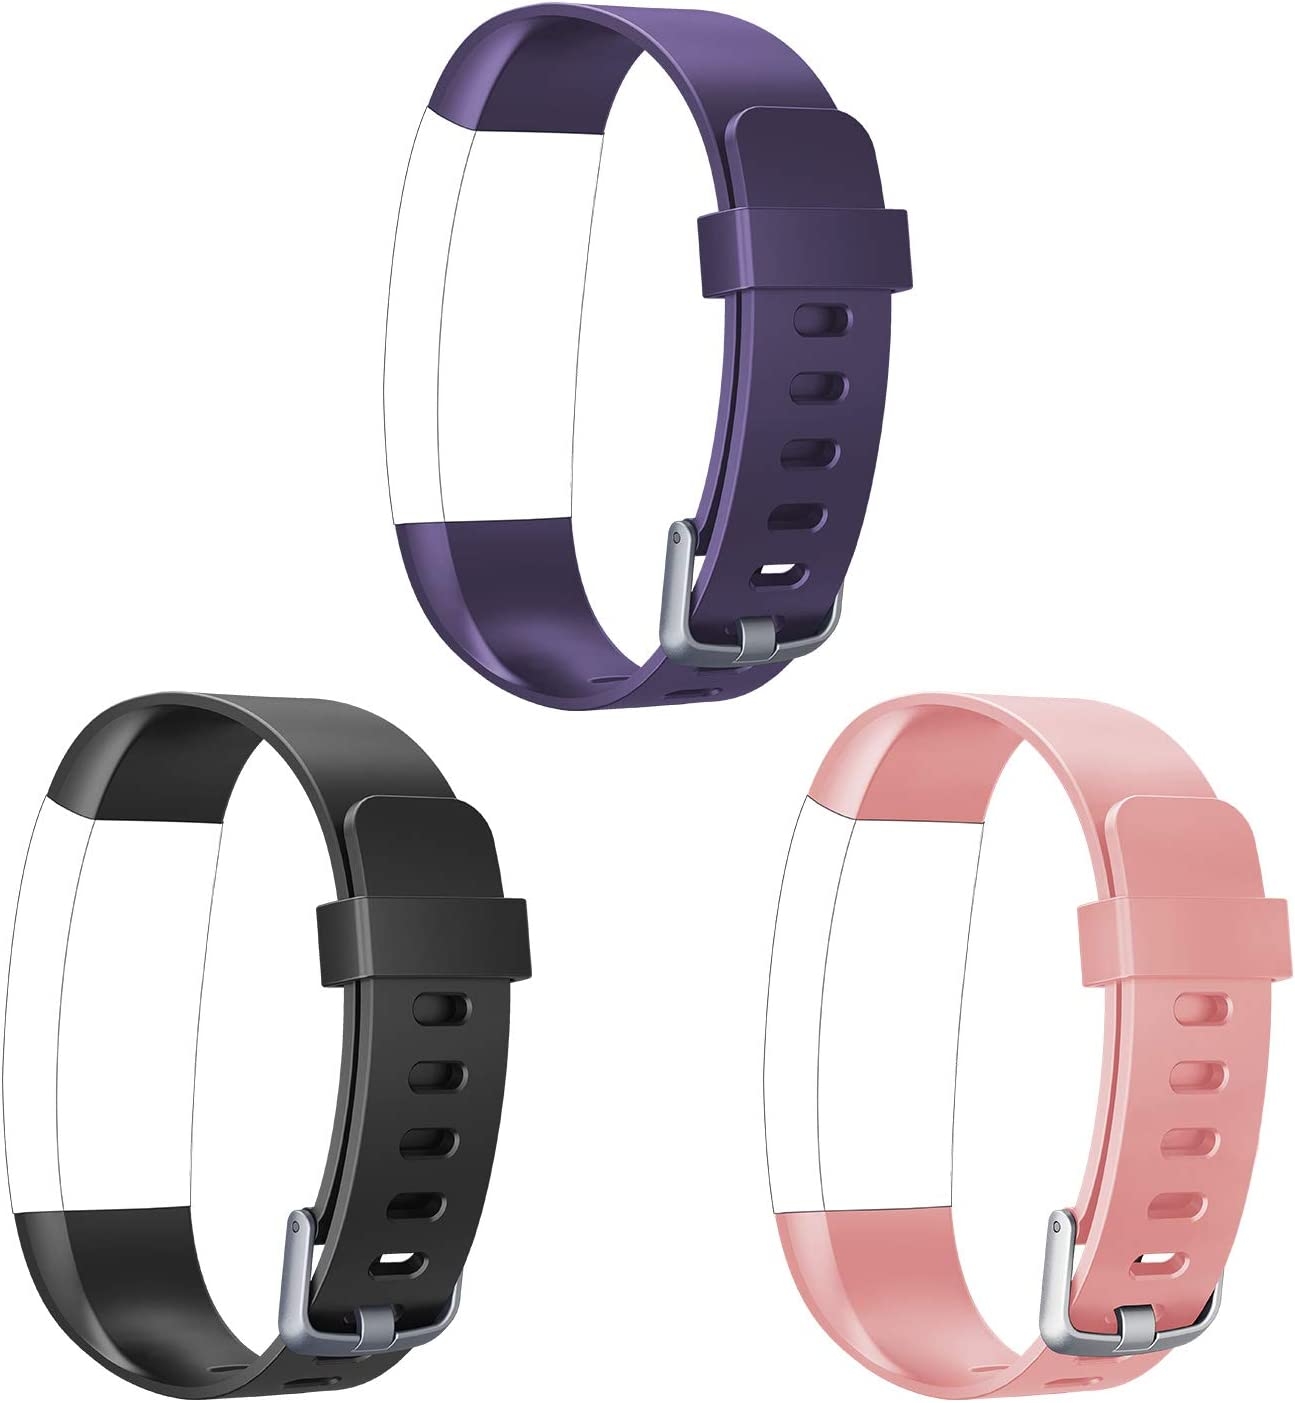 Letsfit Replacement Bands for Fitness Tracker